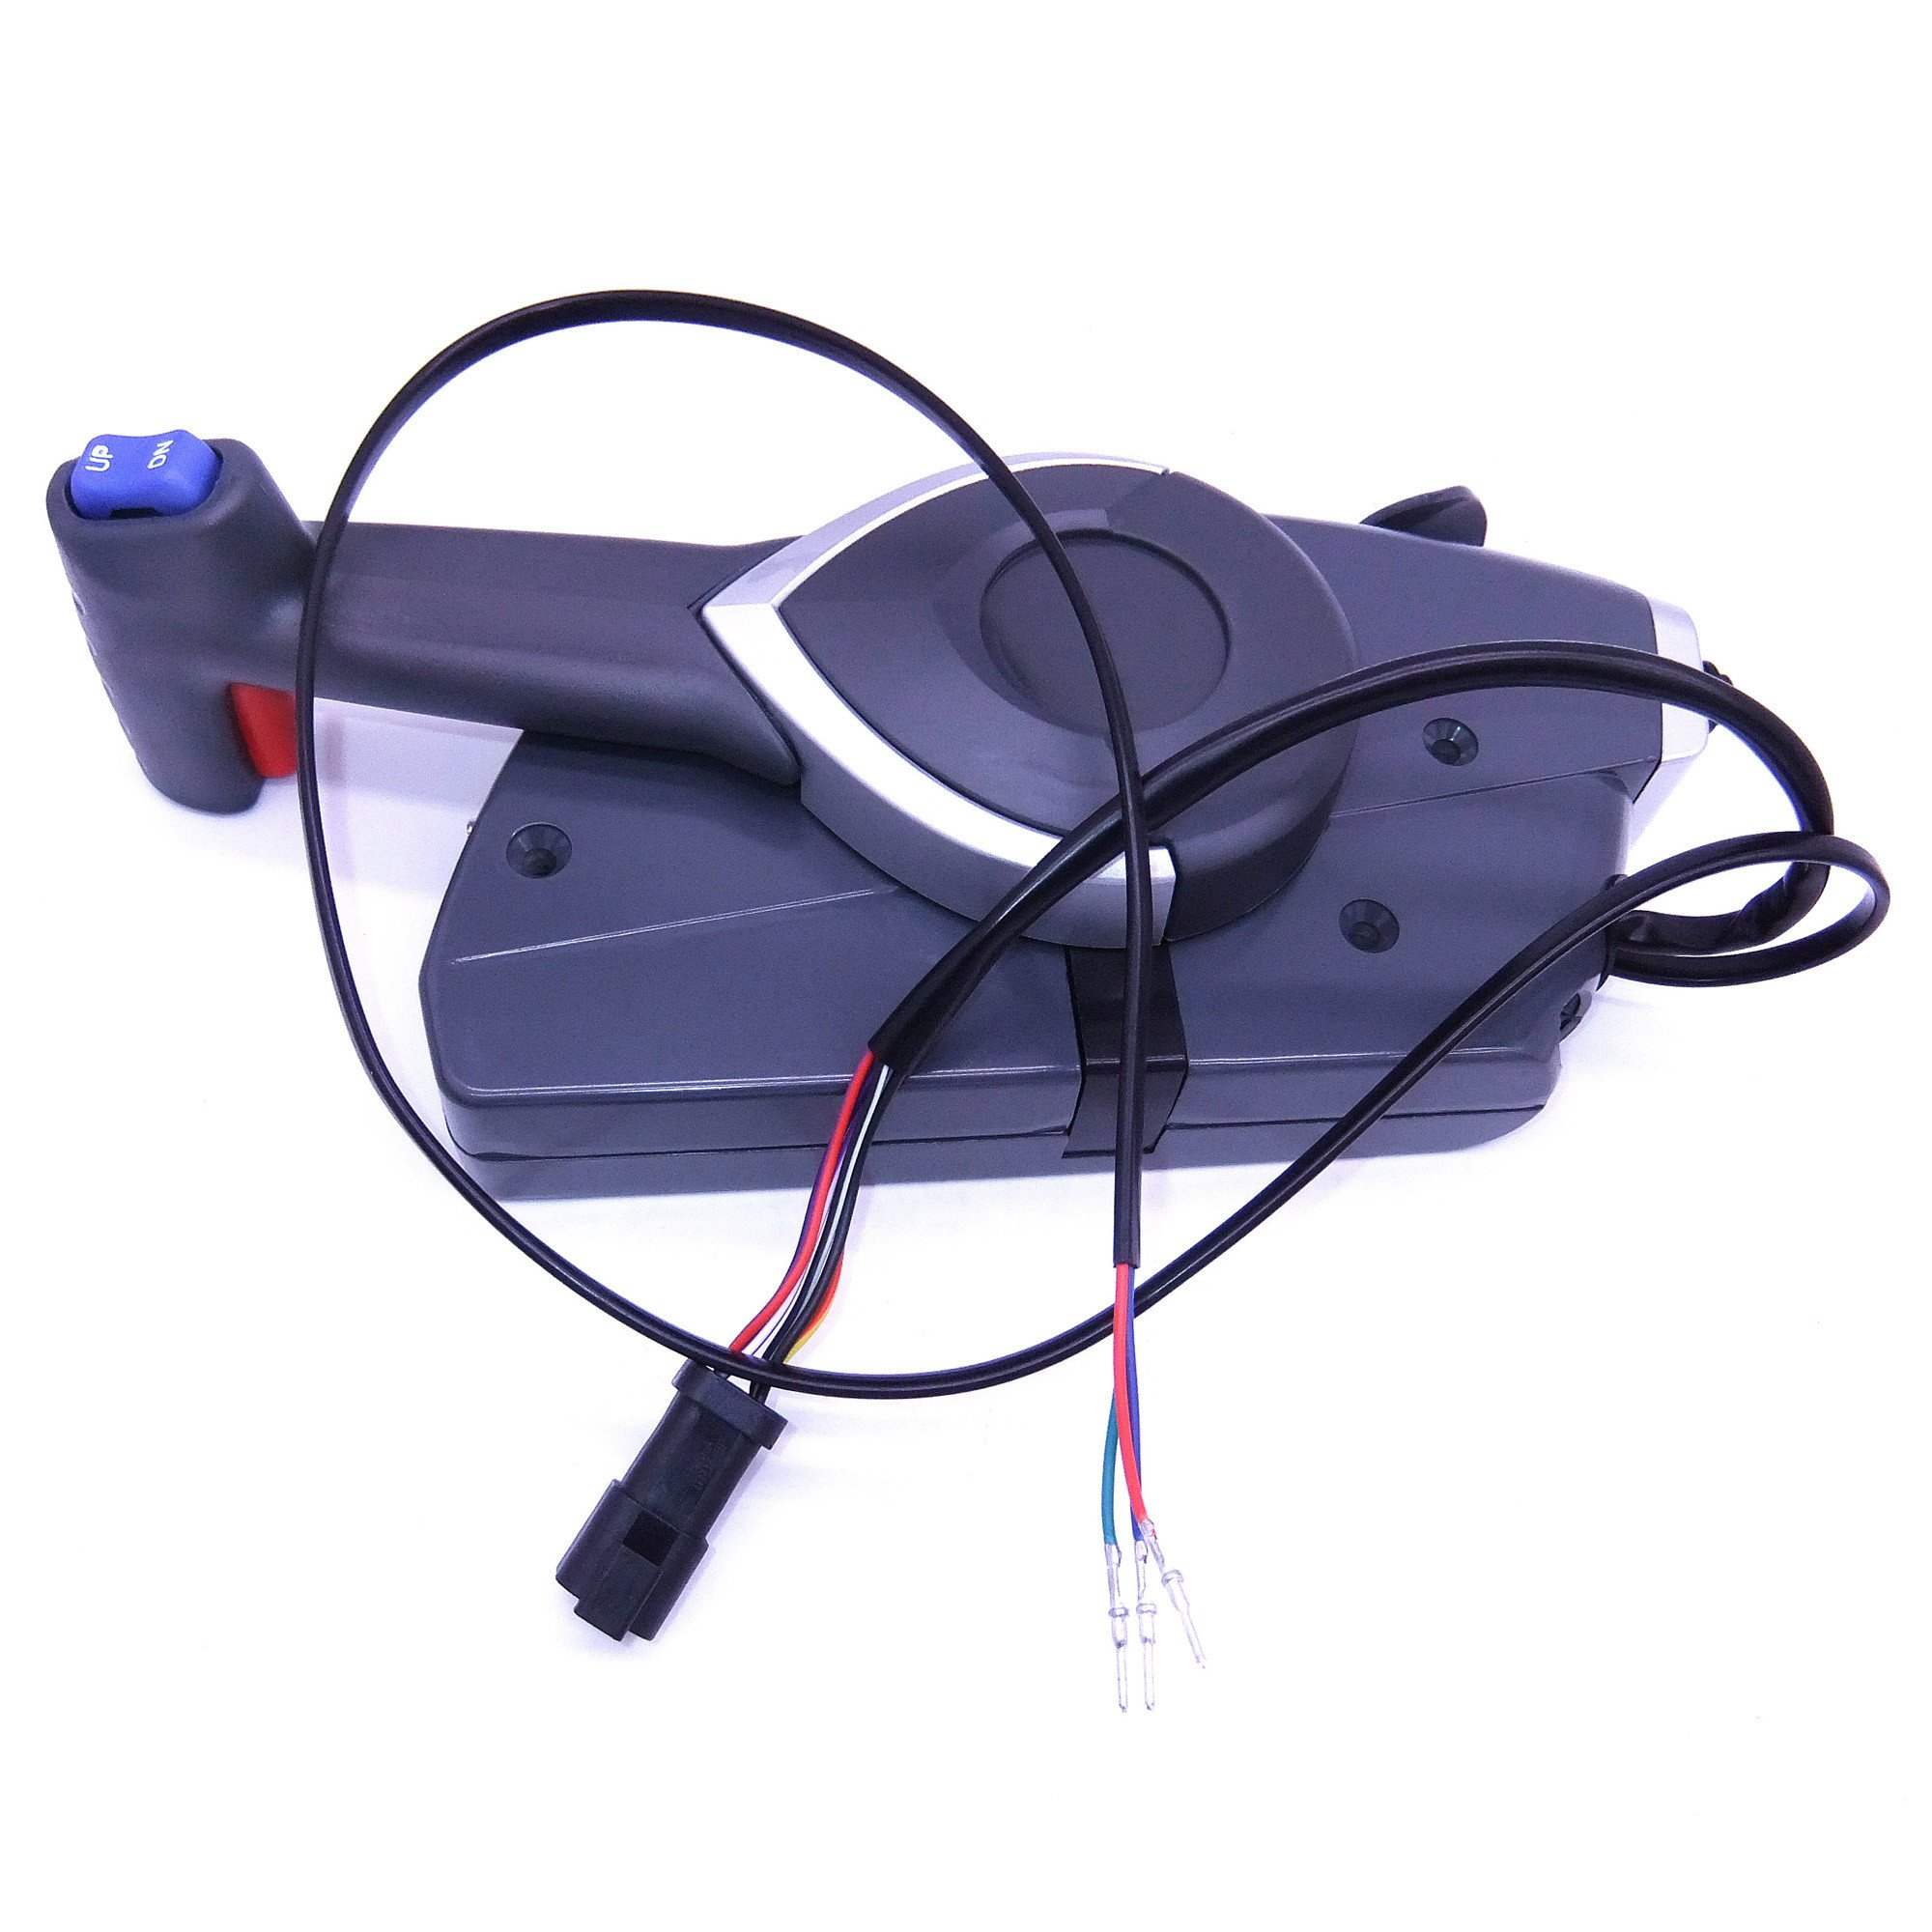 5006180 Boat Motor Side Mount Remote Control Box for Johnson Evinrude OMC BRP Outboard Engine by SouthMarine